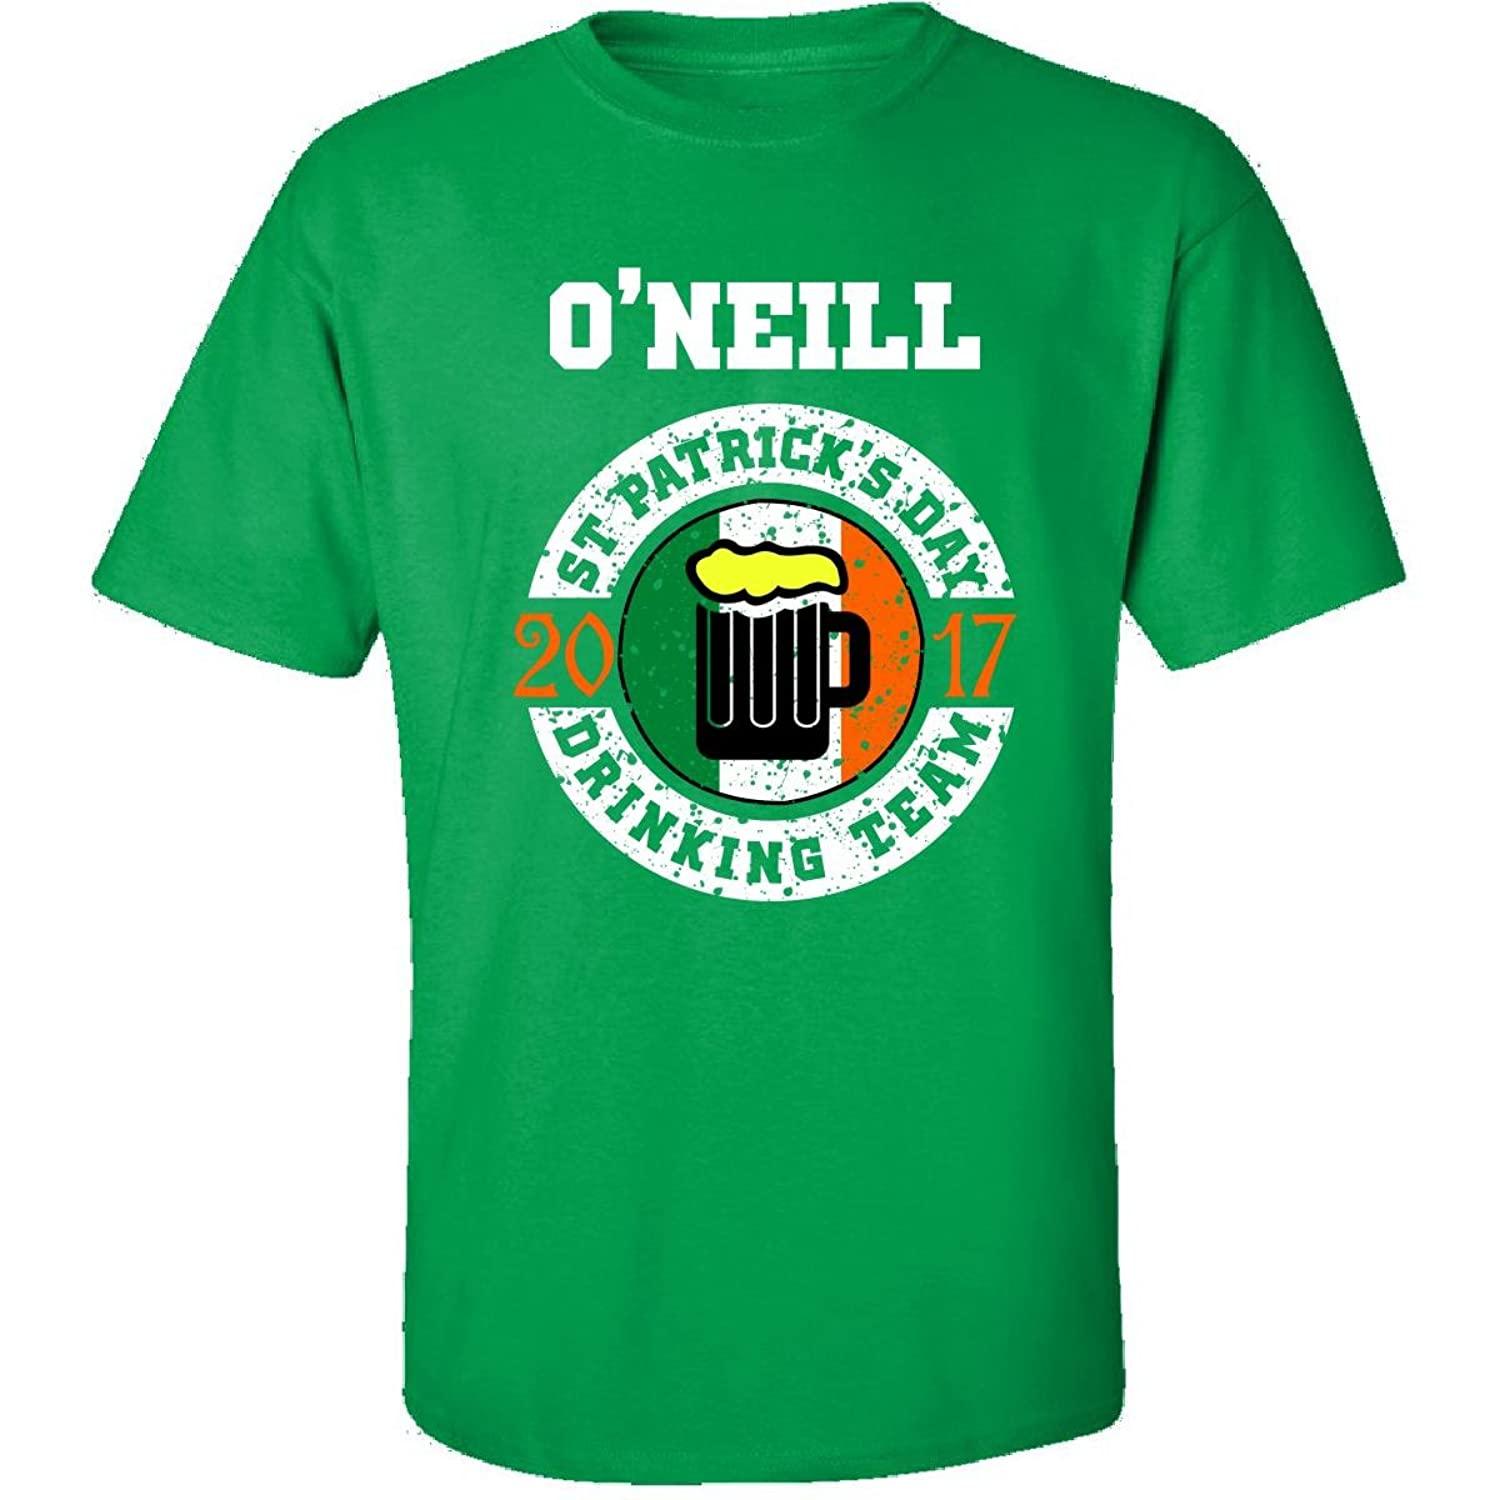 St Patricks Day Oneill 2017 Drinking Team Irish - Adult Shirt